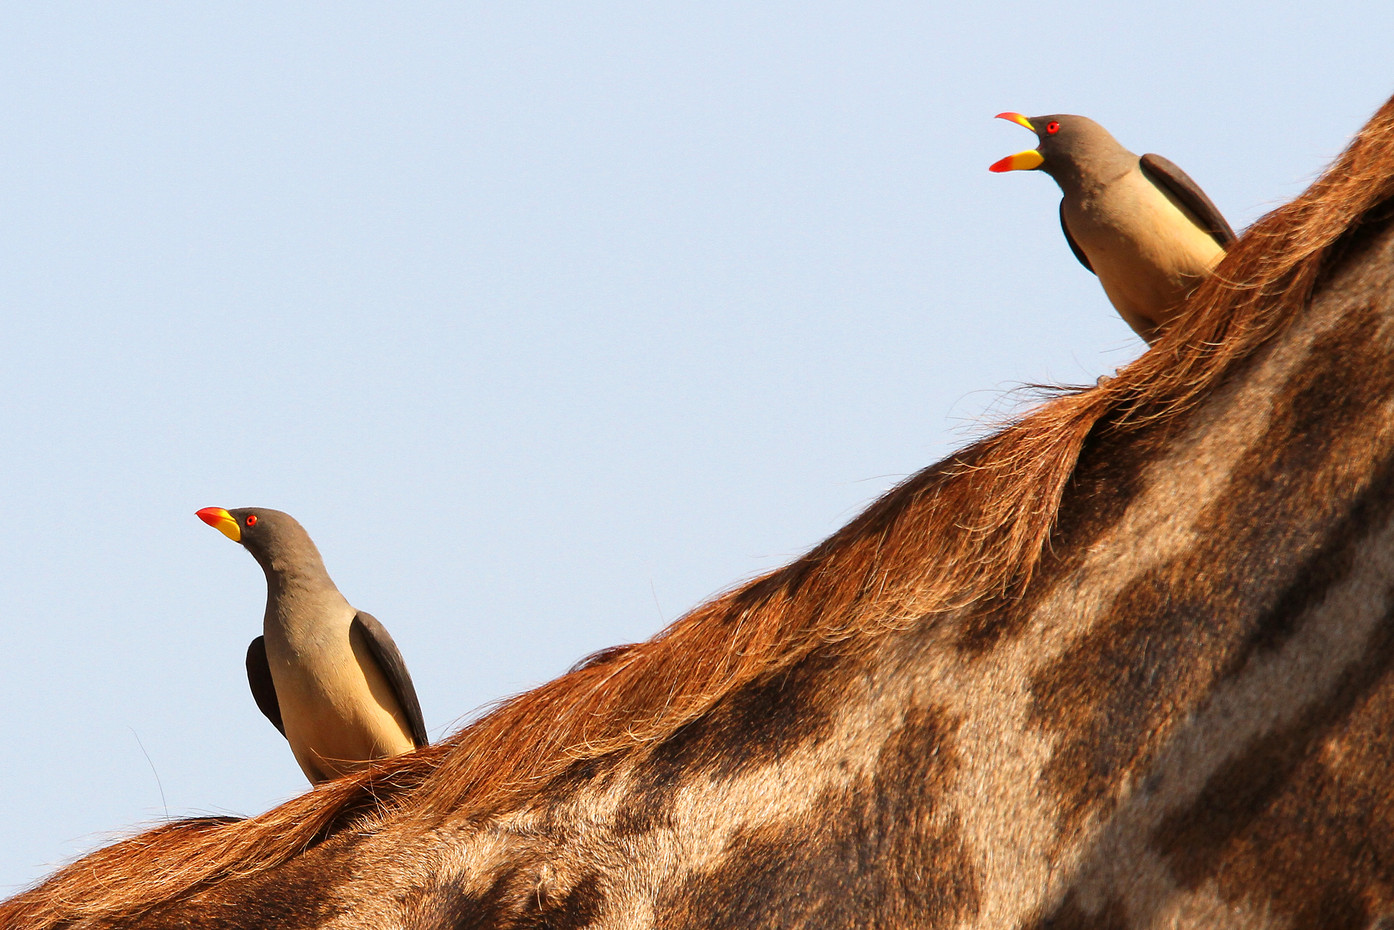 Yellow-billed Oxpeckers & giraffe in the Serengeti NP, Tanzania